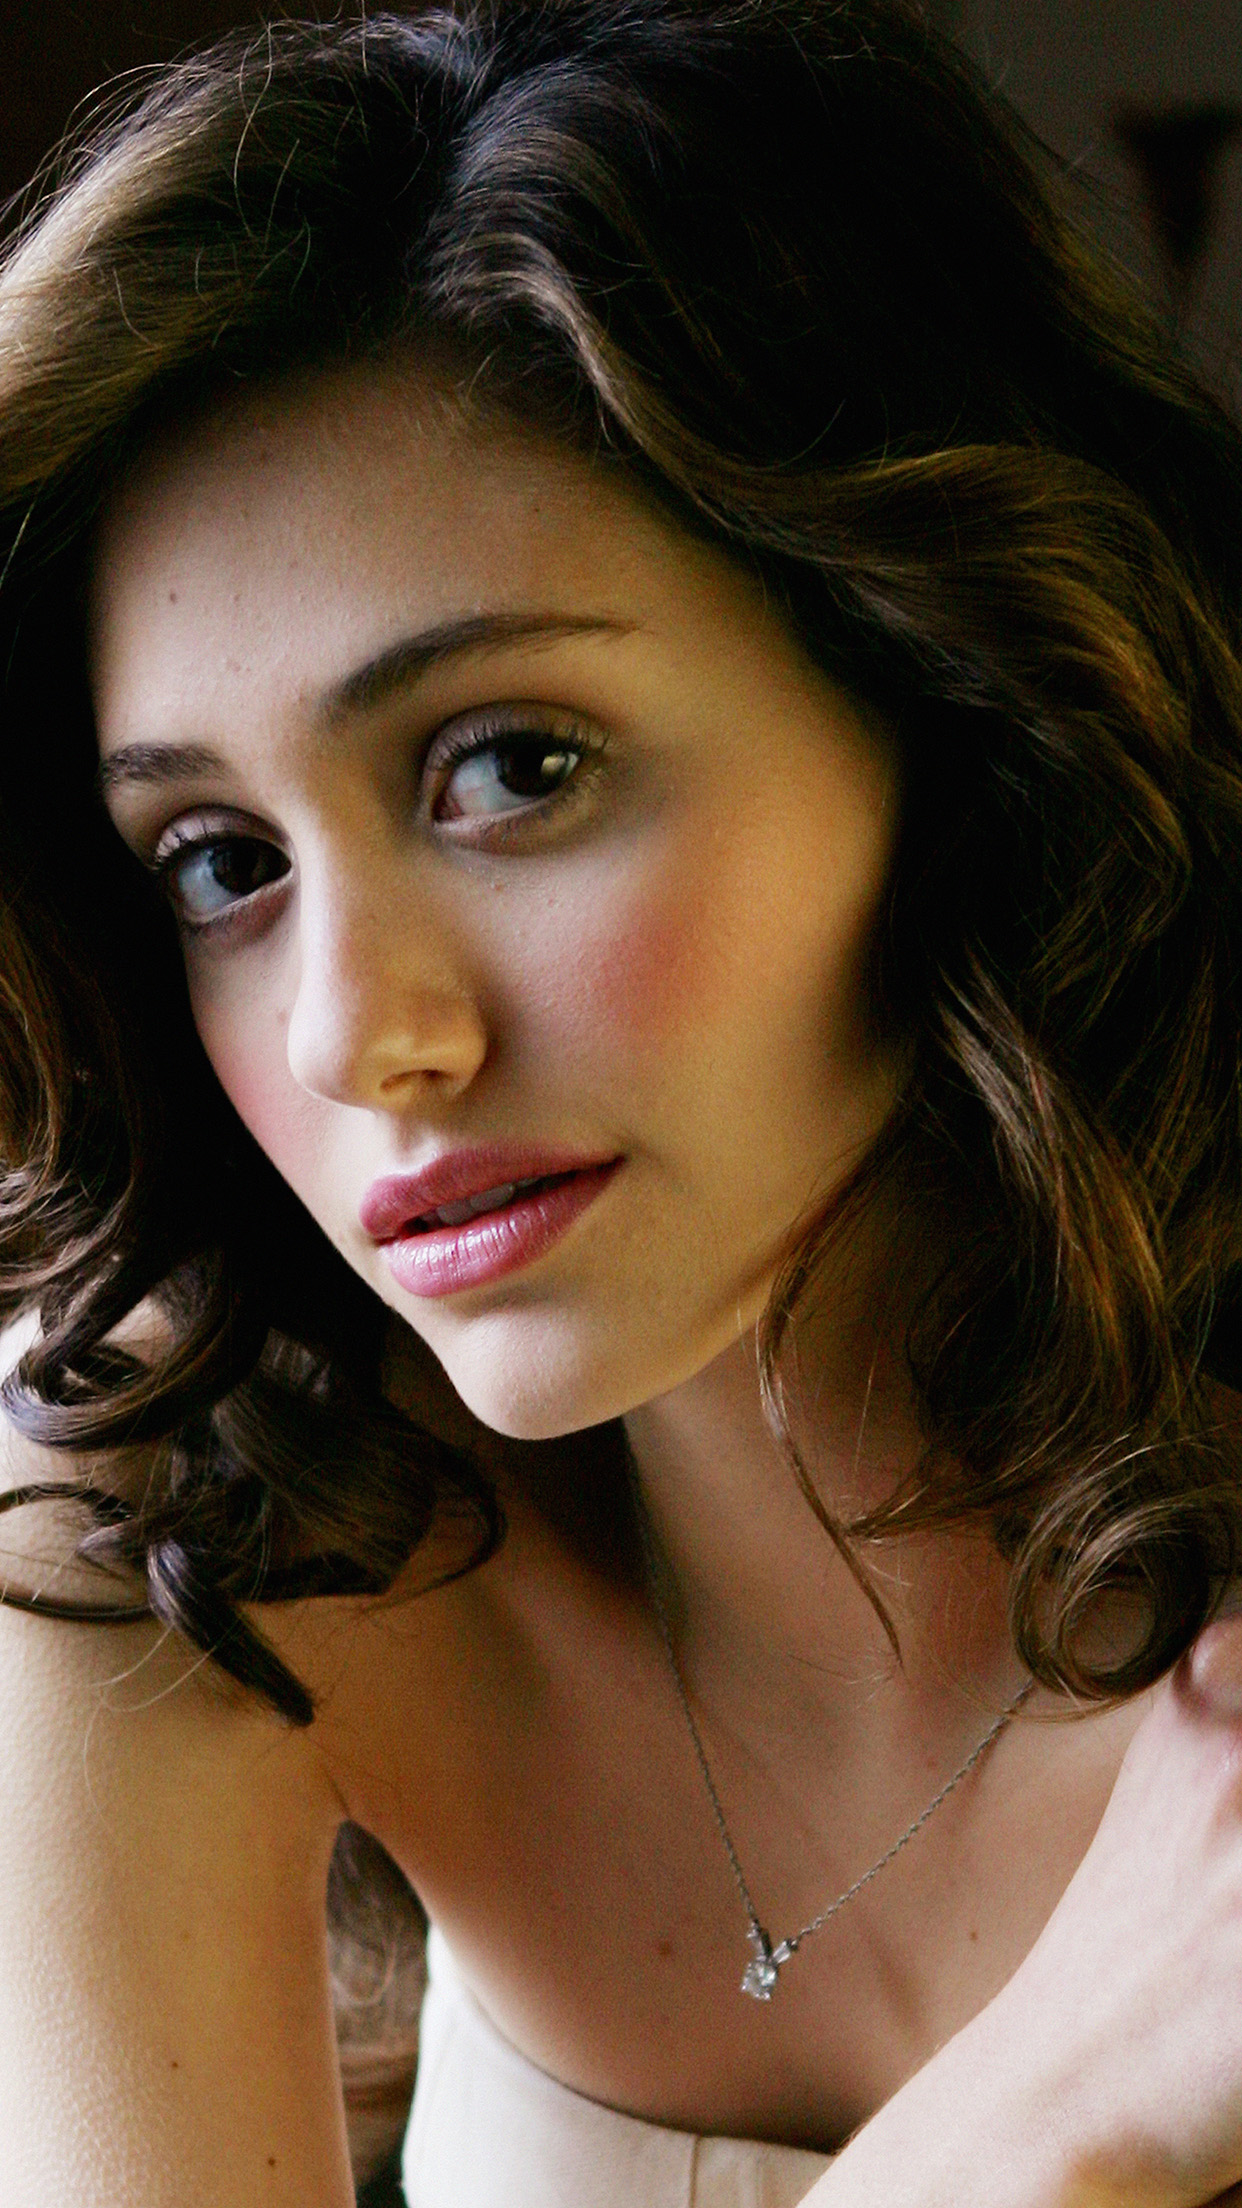 Cute Girly Wallpapers For Phone Papers Co Iphone Wallpaper Hk61 Emmy Rossum Actress